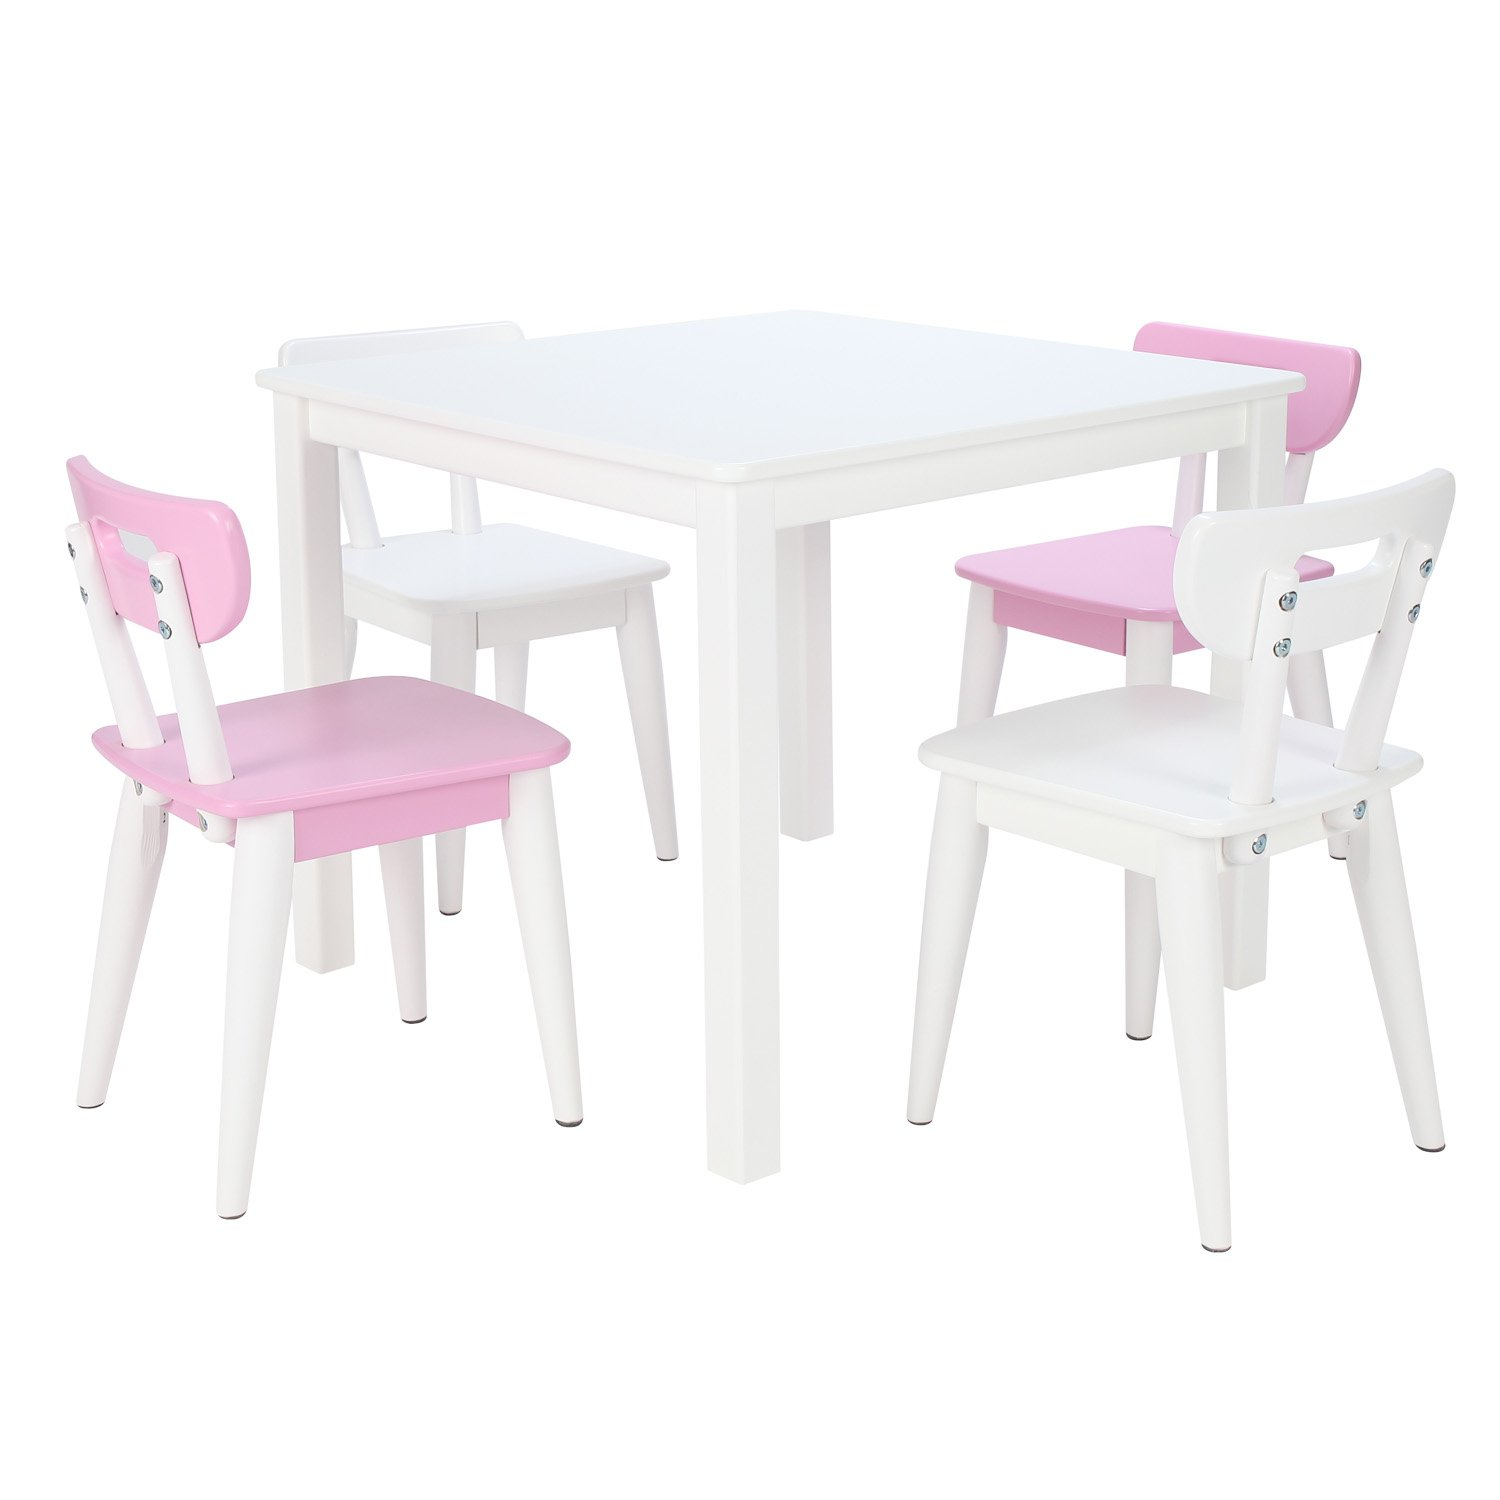 Amazon com max lily white wood kid and toddler square table modern chairs pink pink white white kitchen dining